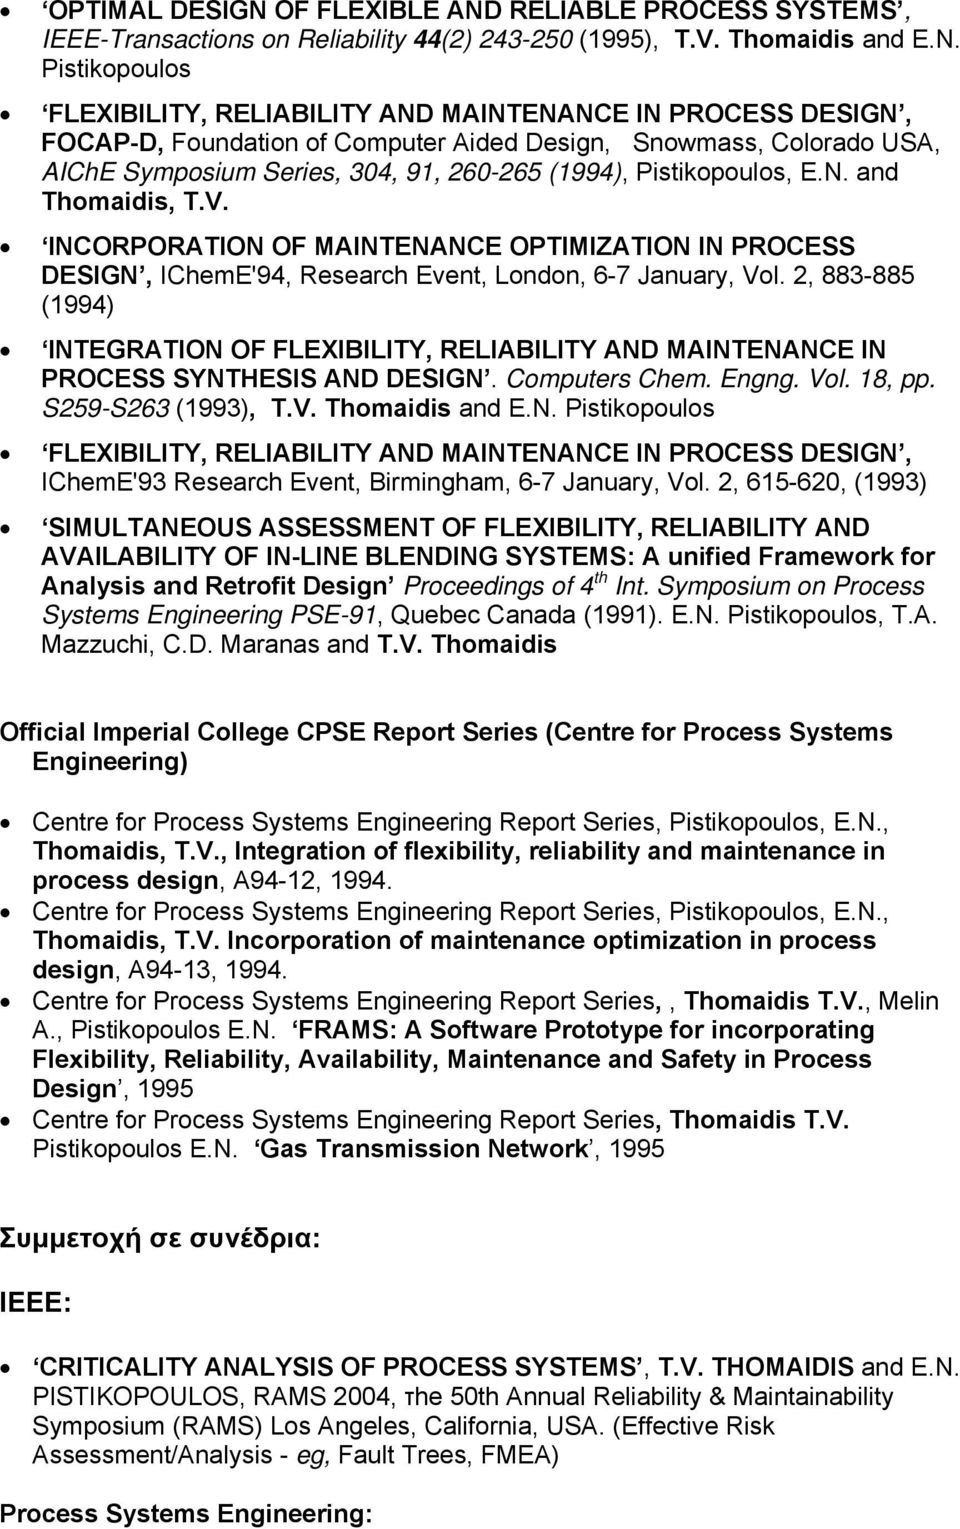 RELIABLE PROCESS SYSTEMS, IEEE-Transactions on Reliability 44(2) 243-250 (1995), T.V. Thomaidis and E.N.